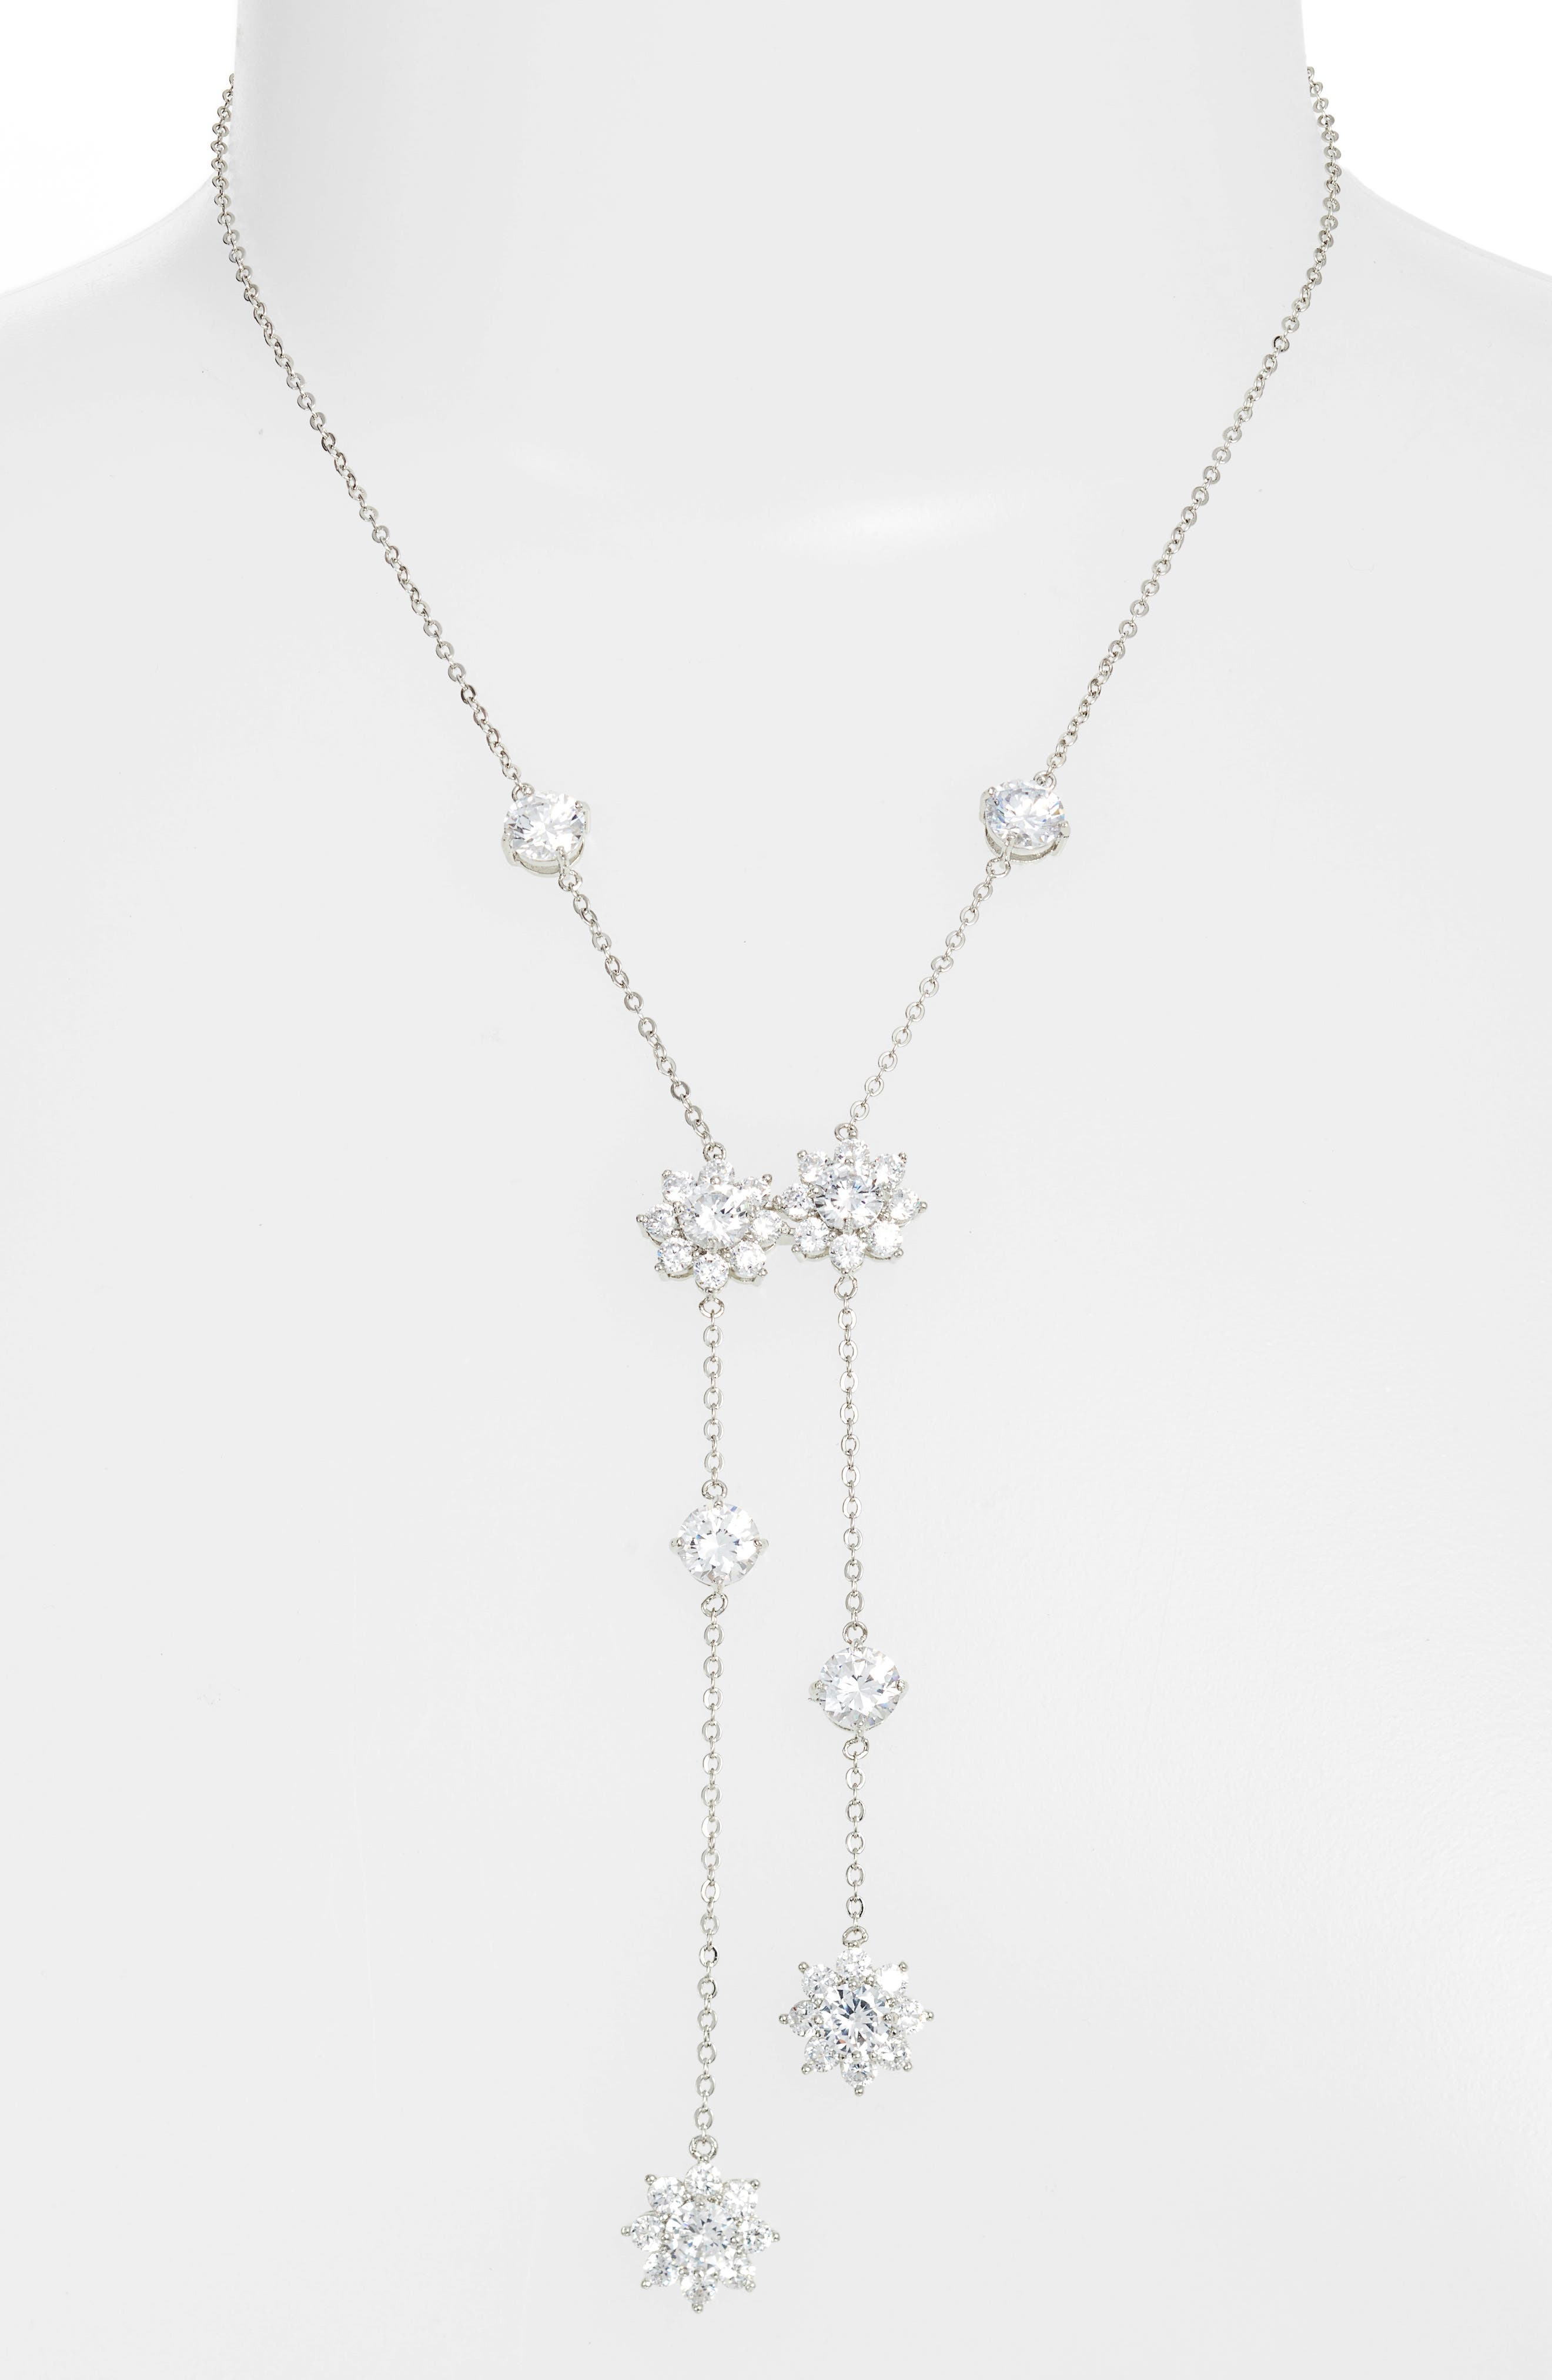 Small Flower Y Necklace,                             Main thumbnail 1, color,                             Silver/ White Cz